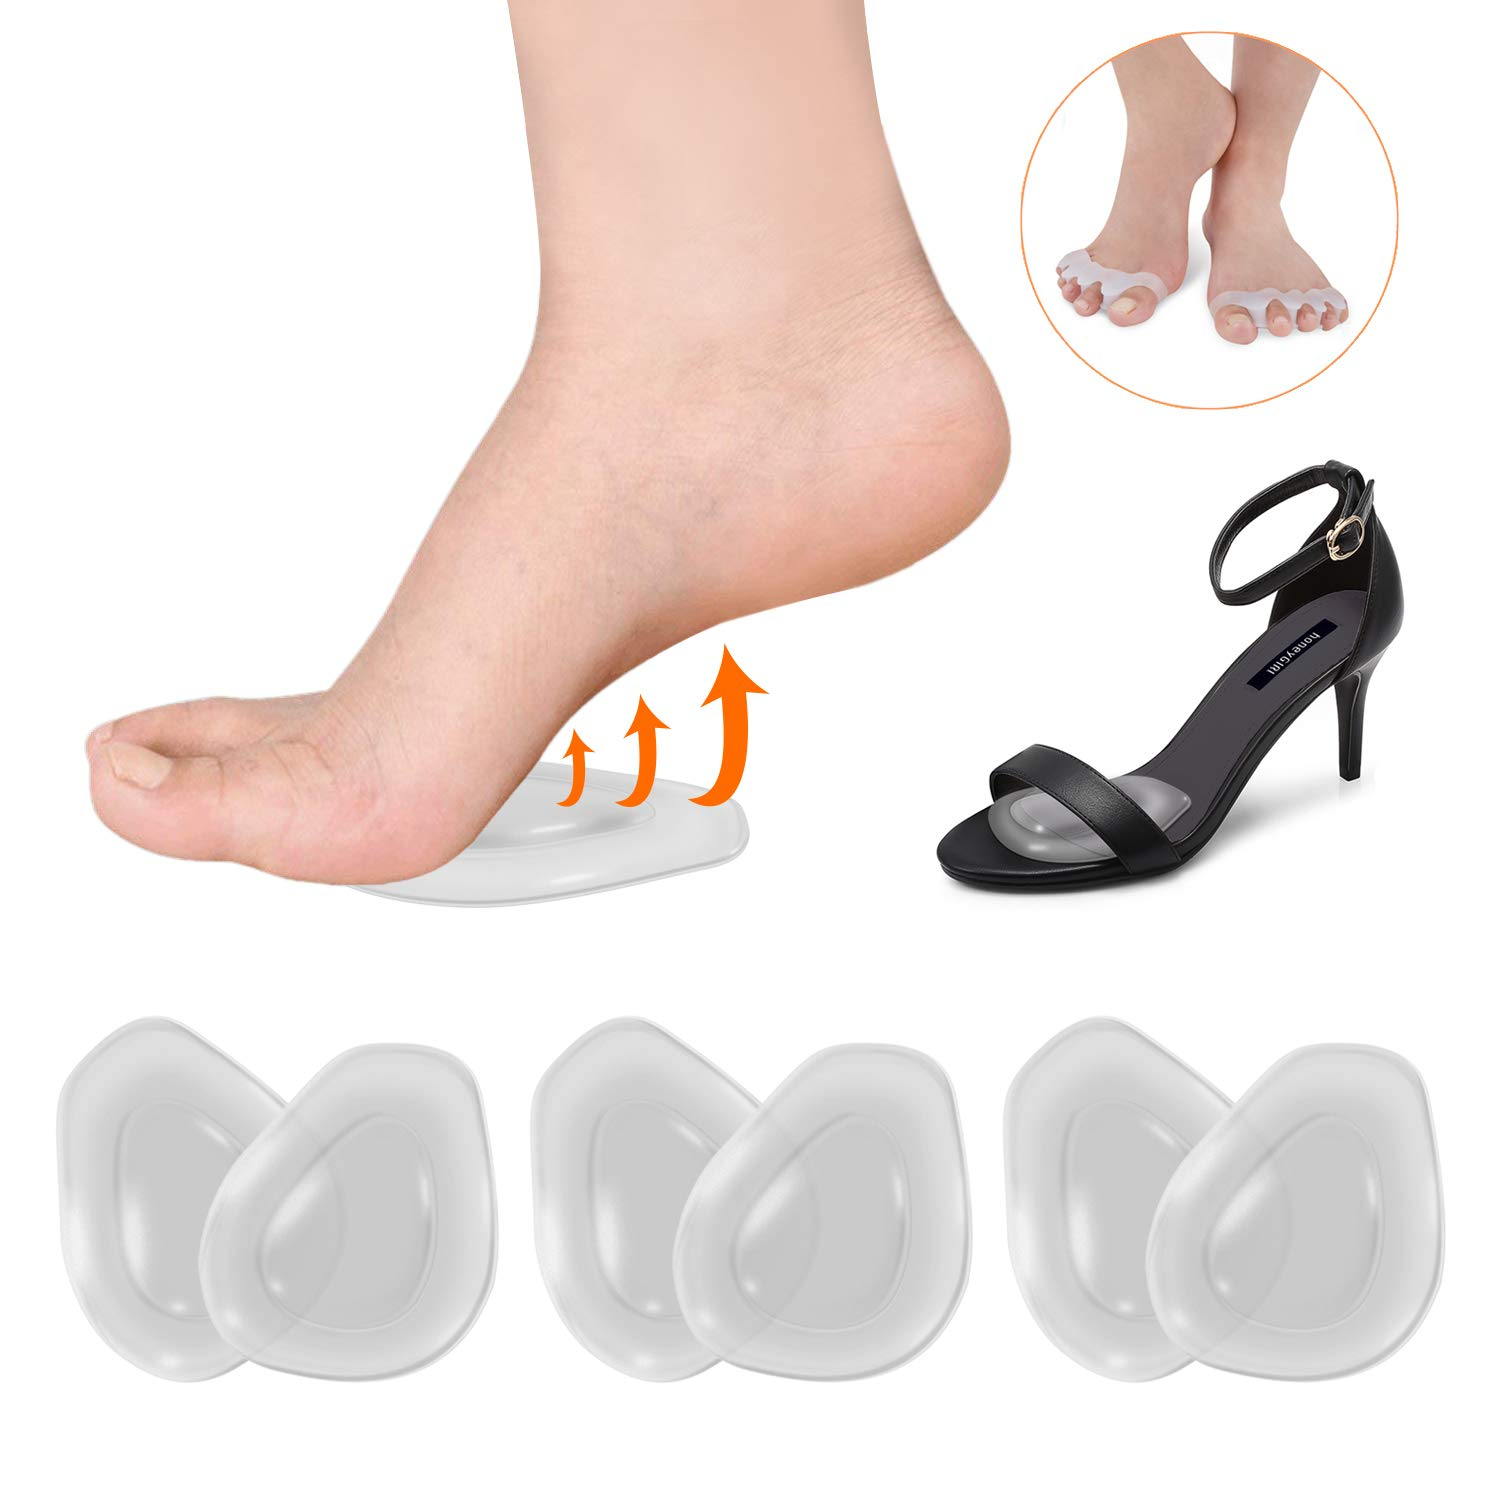 6 Pcs Ball of Cushions with 2 Pcs Toe Separator Non-Slip & Comfortable Metatarsal Pads Self-Sticking Women Shoe Inserts for Pain Relief from Neuroma, Metatarsalgia & Forefoot